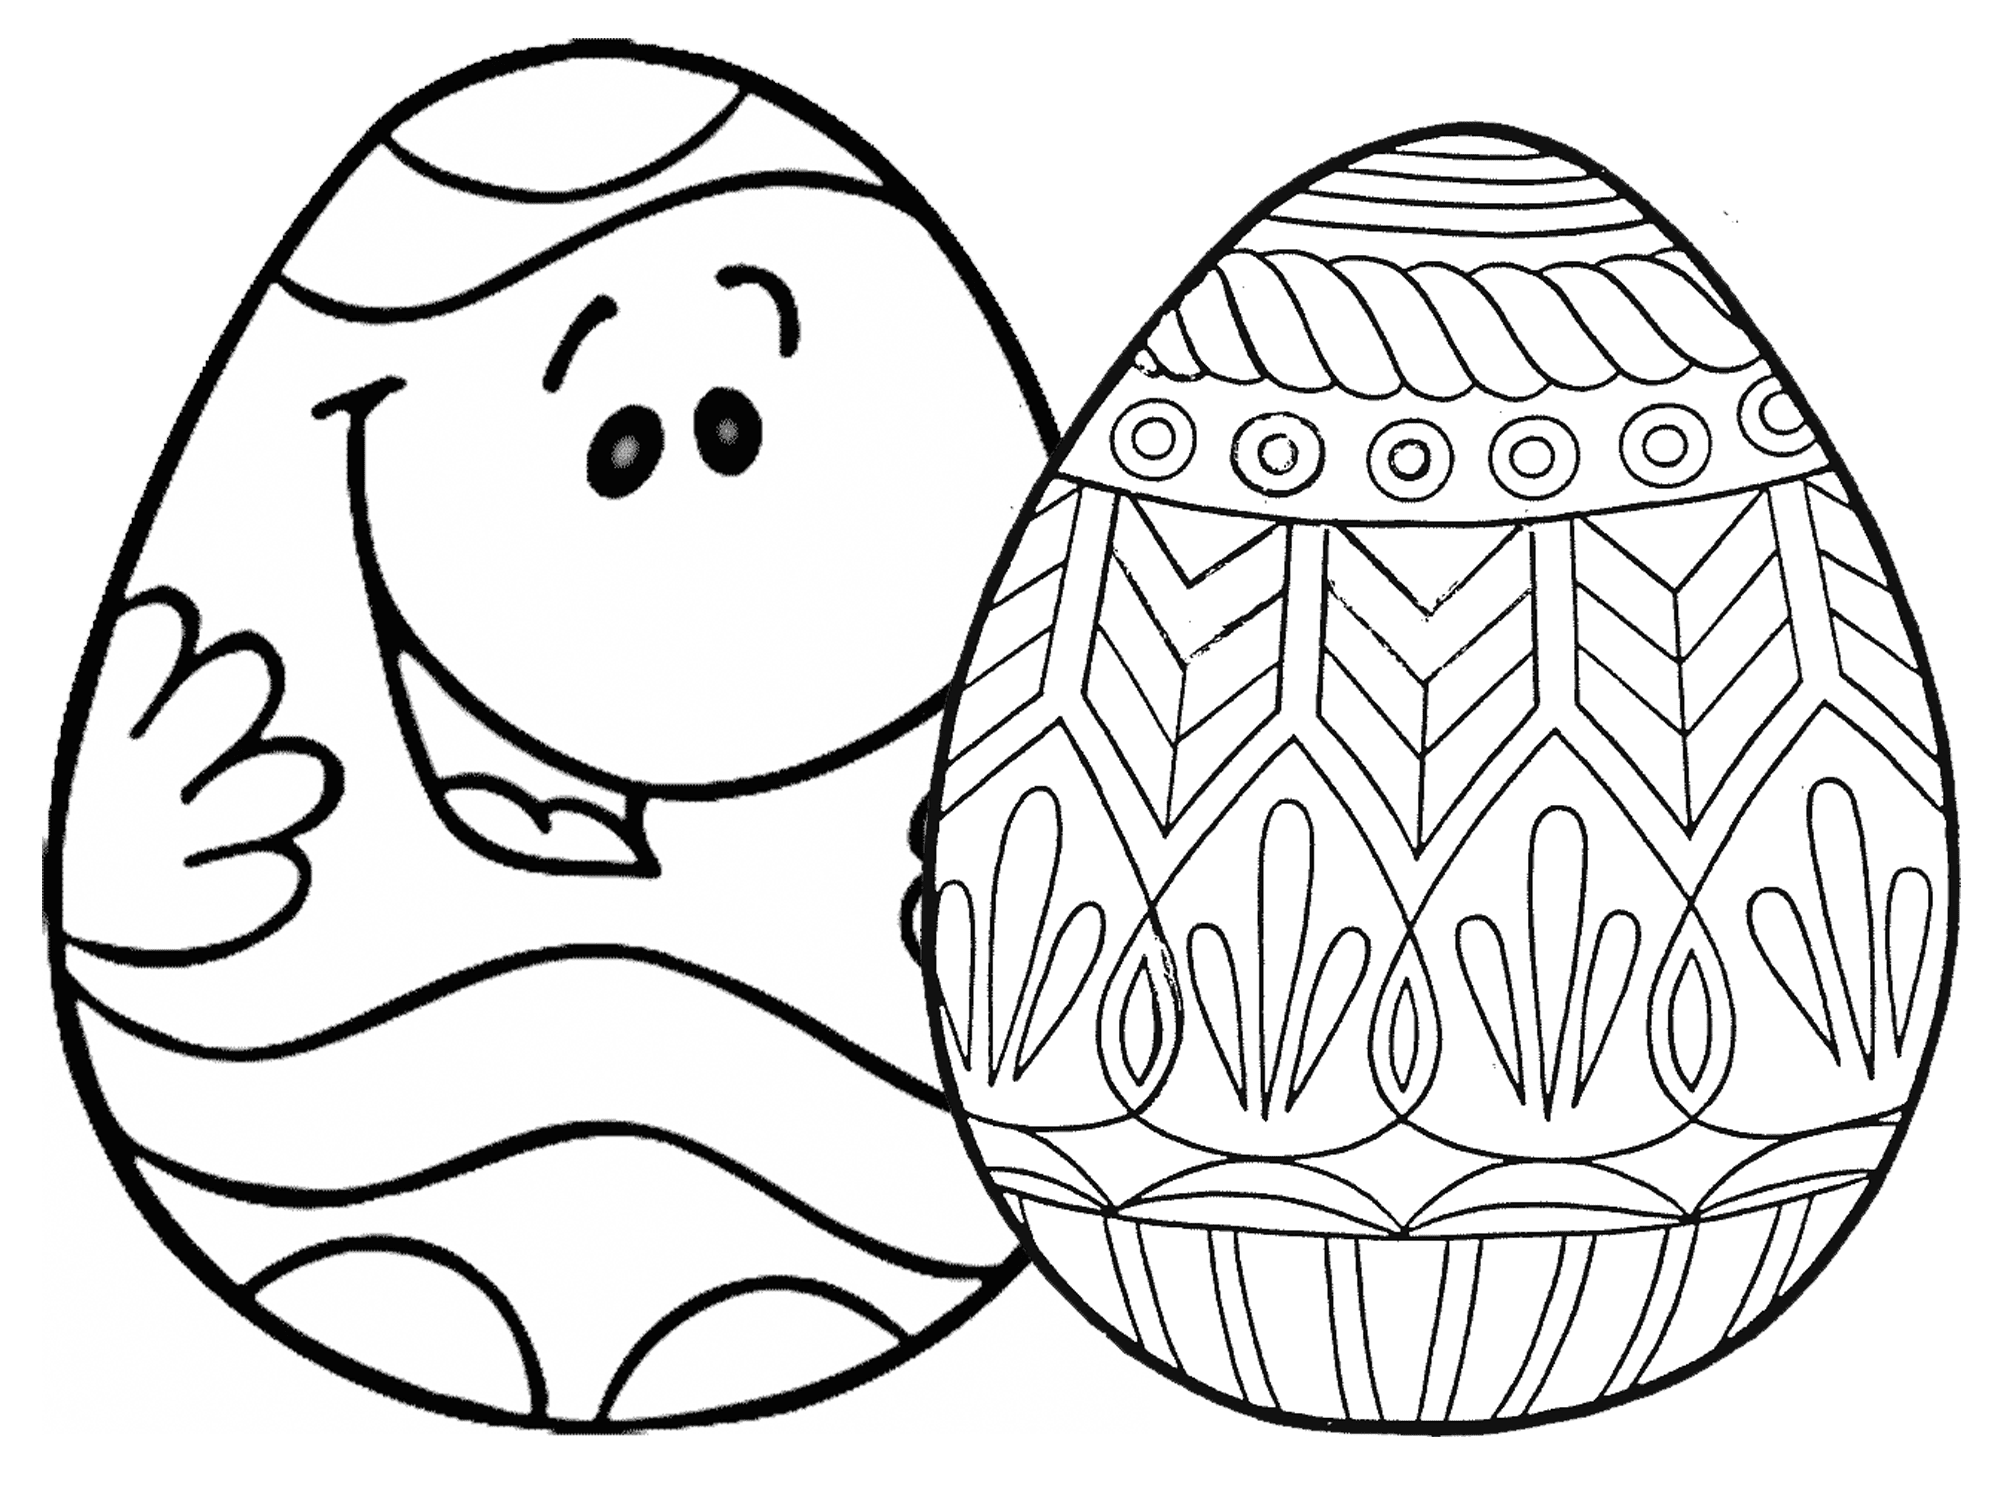 egg for colouring easter egg coloring pages 2018 dr odd colouring egg for